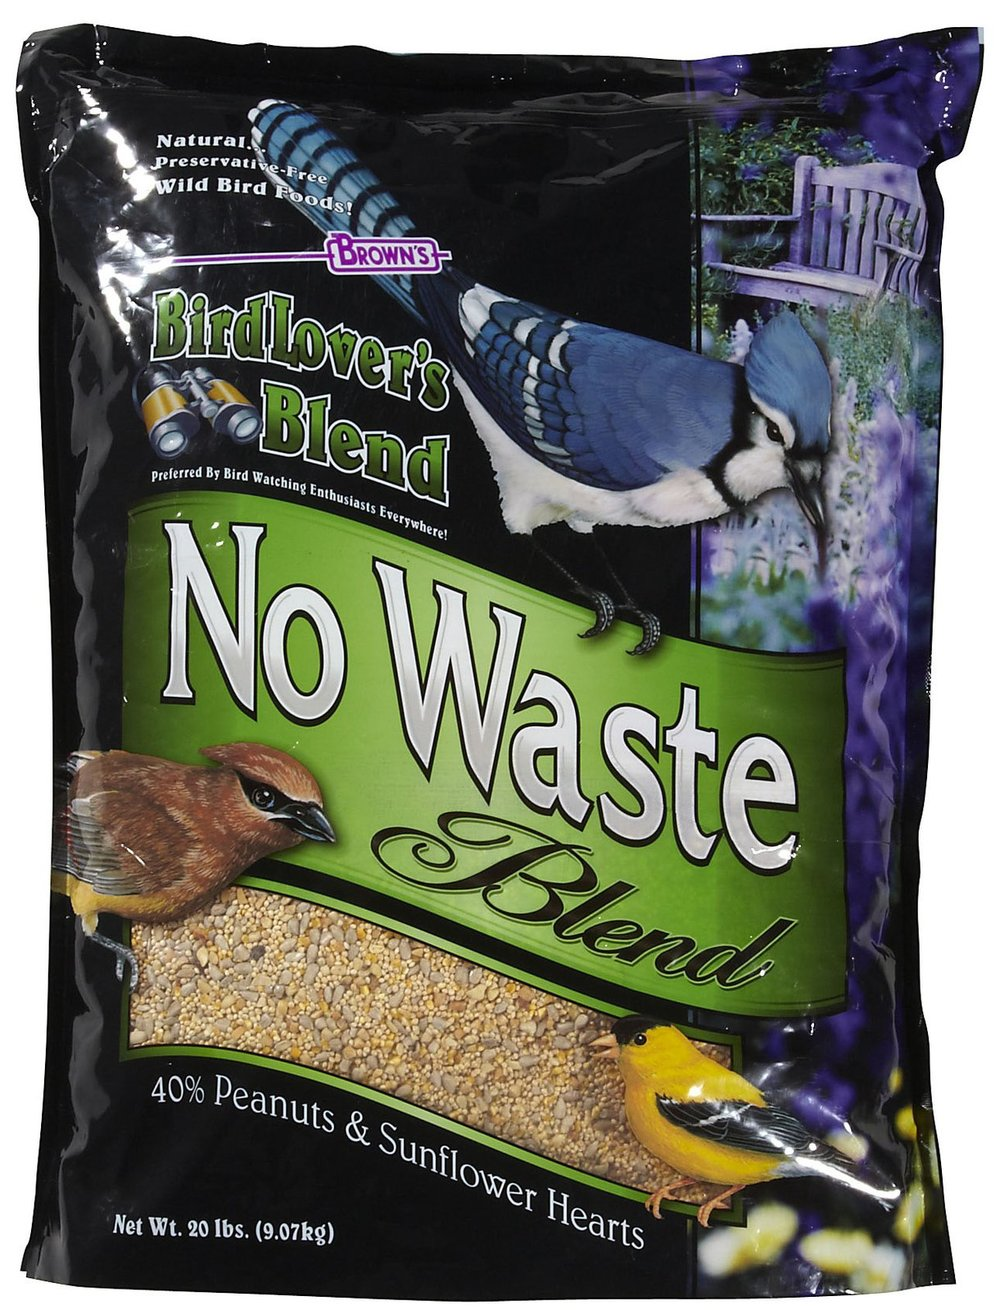 Brown's Bird Lover's Blend No Waste Blend